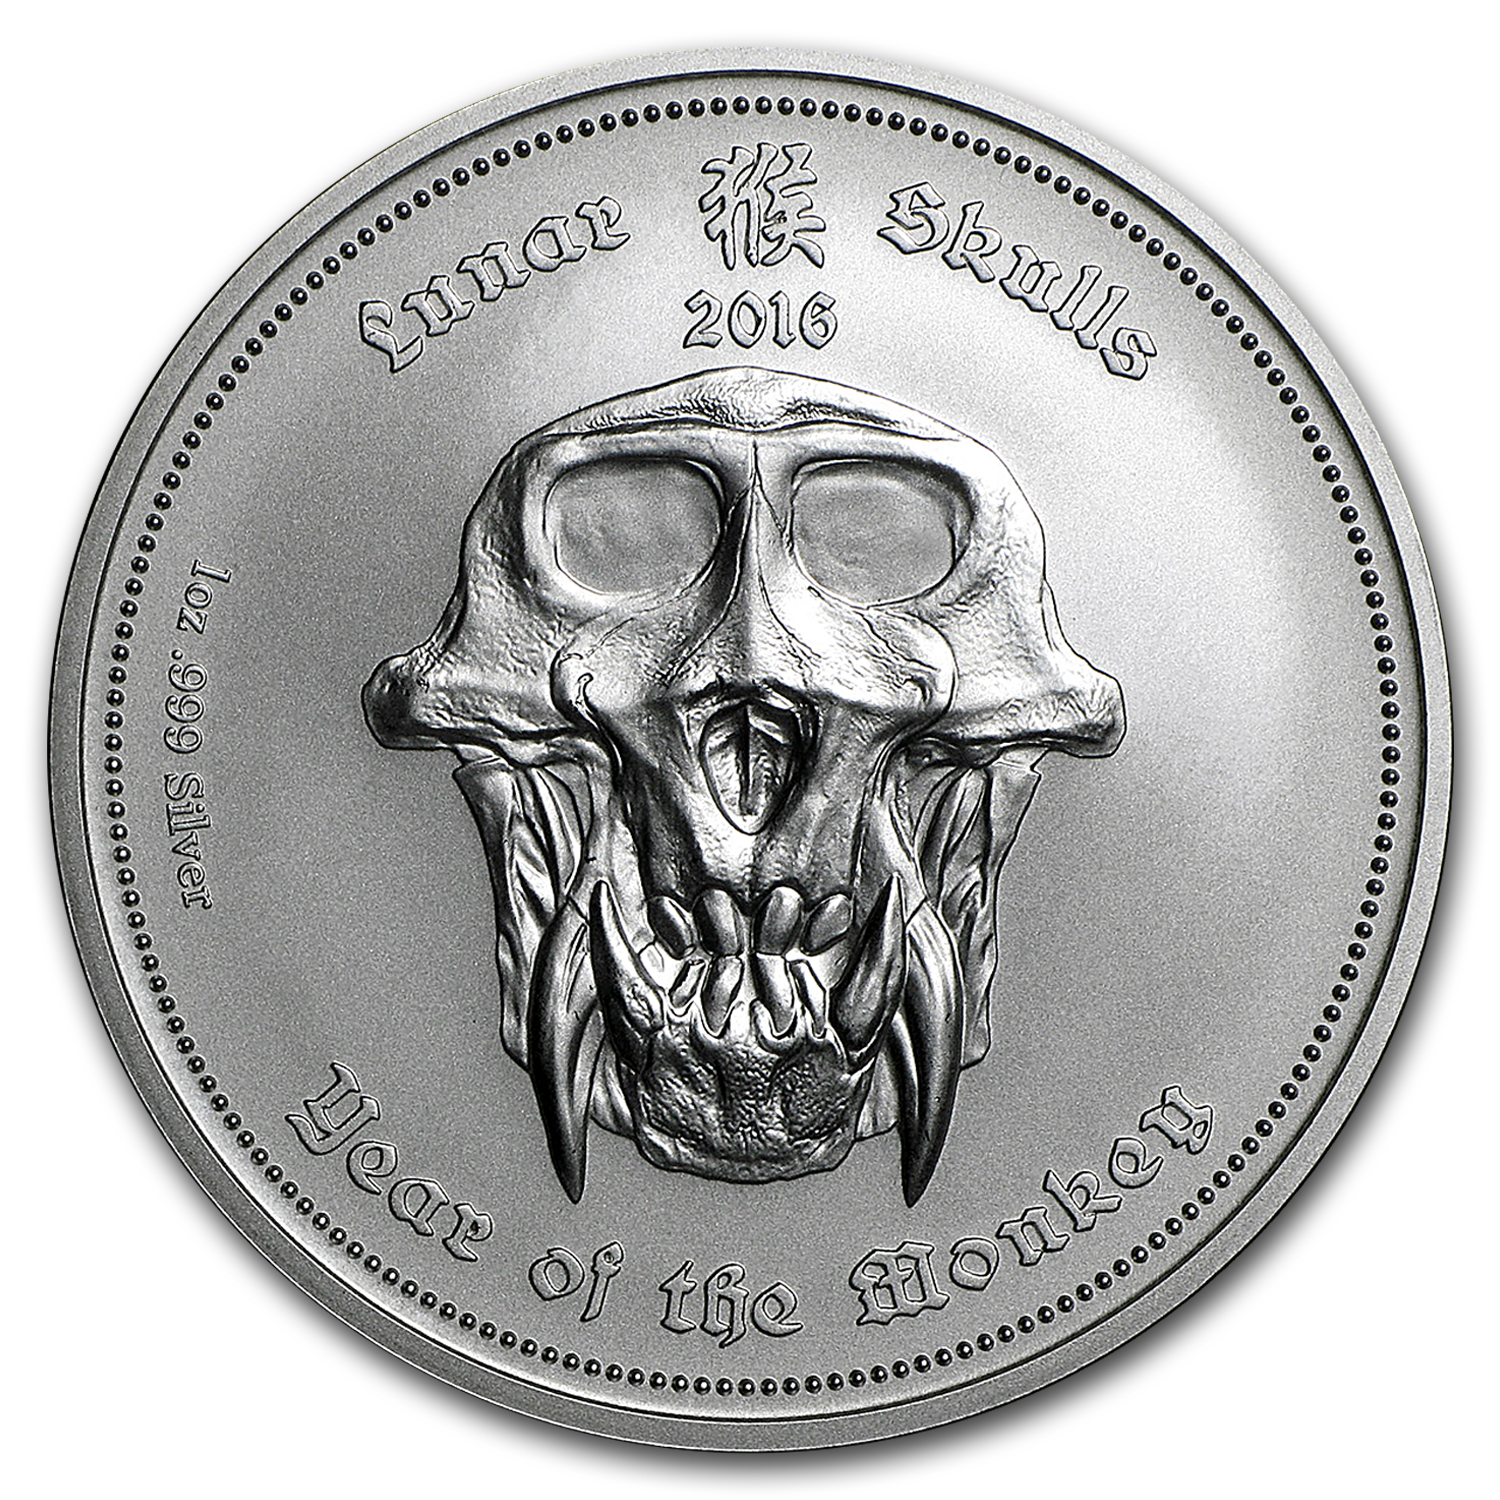 2016 Palau 1 oz Silver Lunar Skulls Year of the Monkey